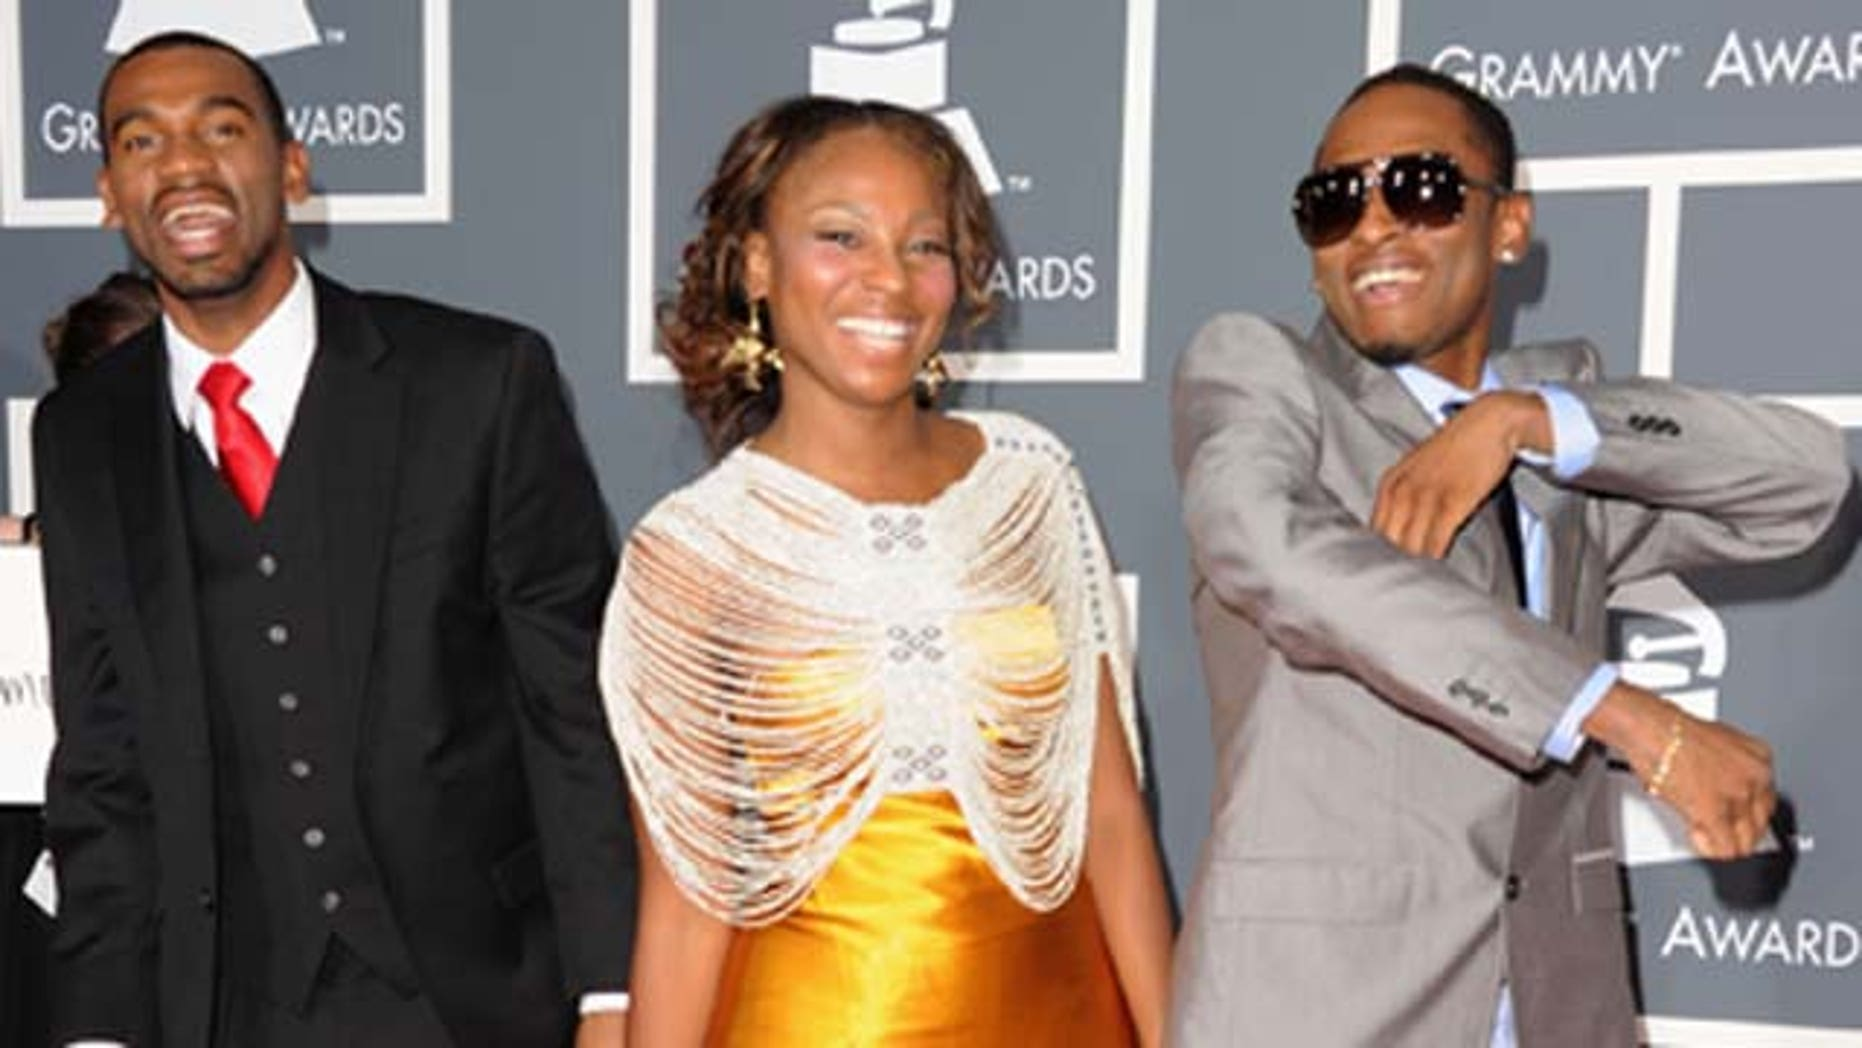 Feb. 13, 2011: Choc Quib Town arrives at The 53rd Annual Grammy Awards held at Staples Center on February 13, 2011 in Los Angeles, Calif.